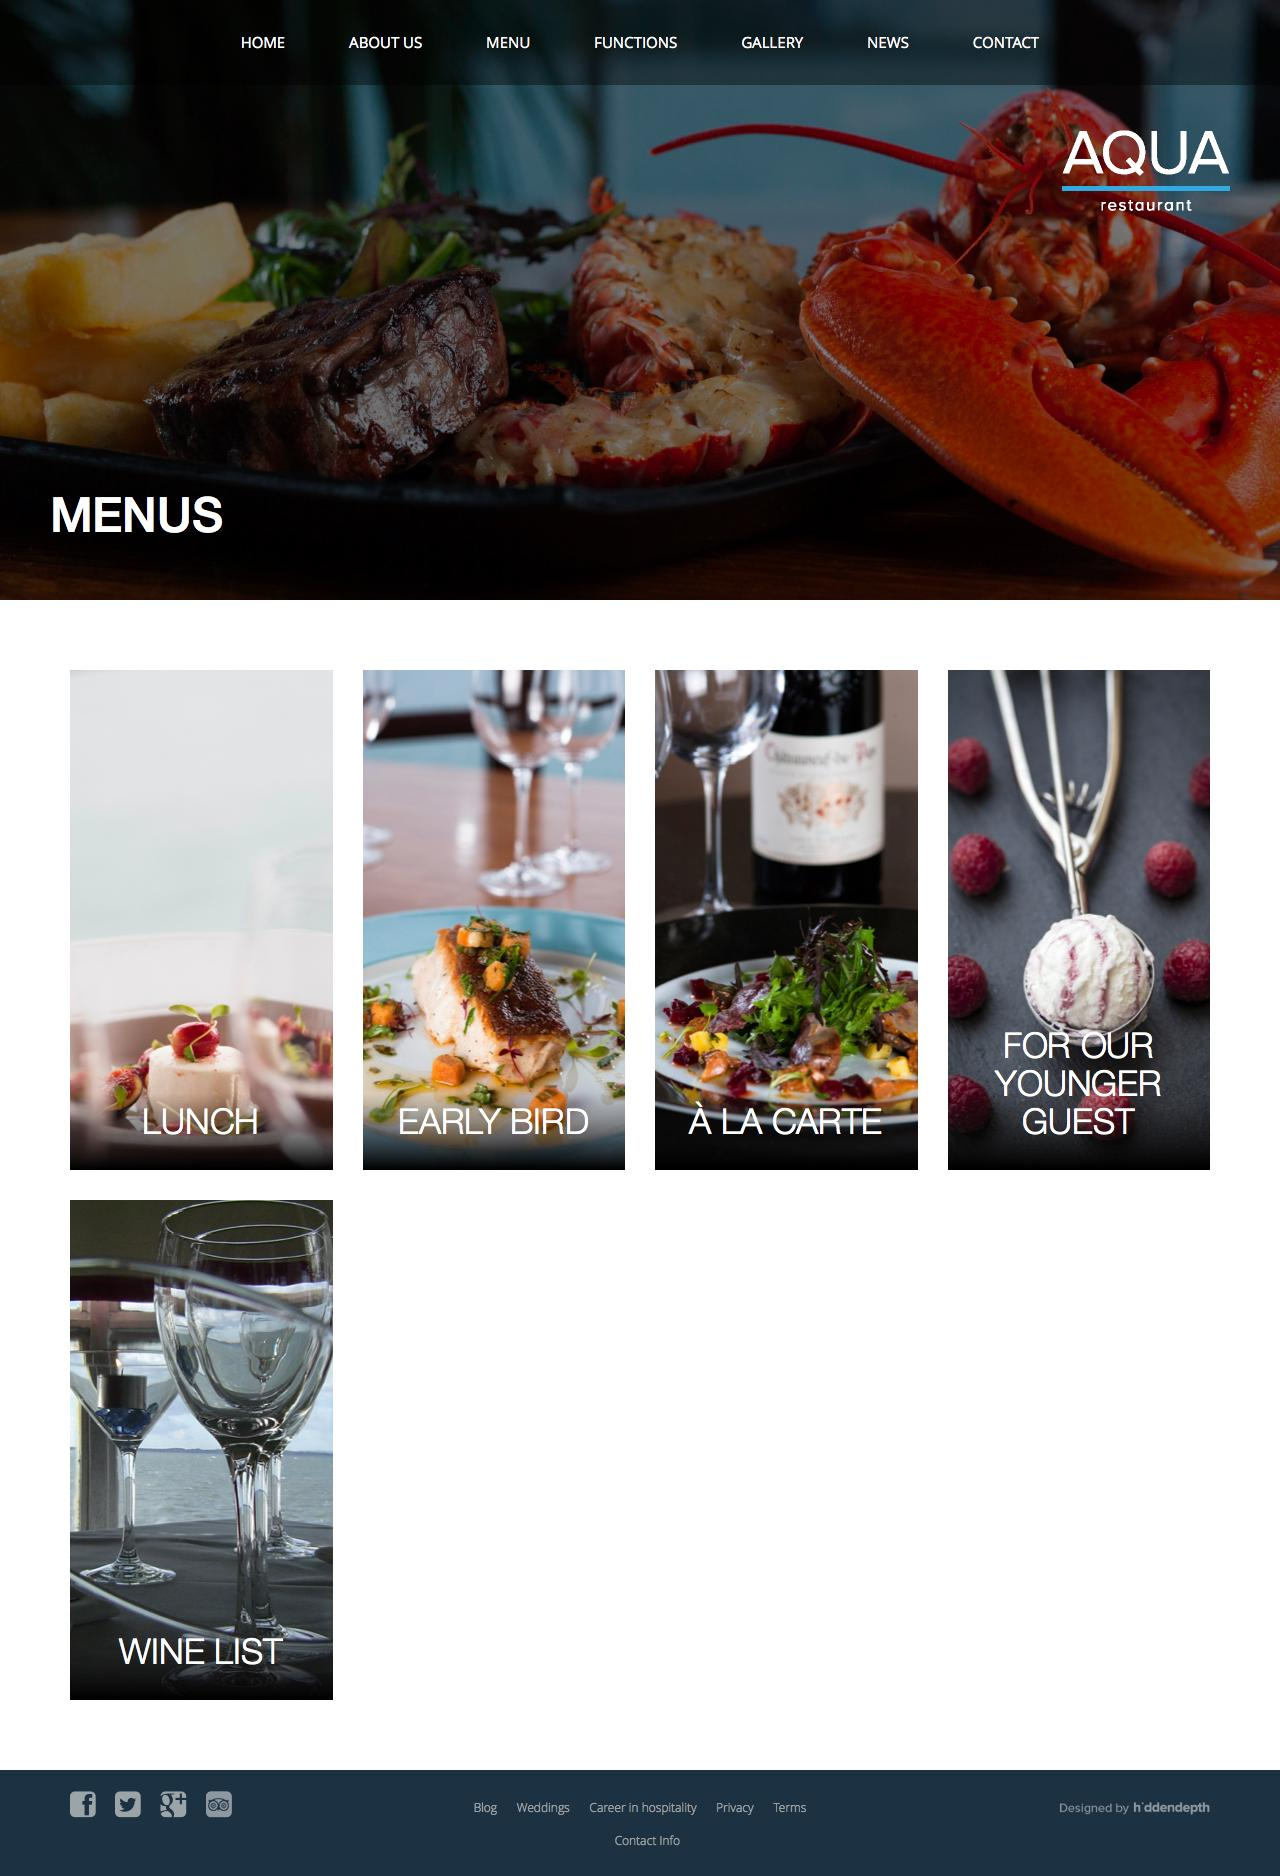 Screenshot of aqua.ie - Menus - Aqua Restaurant - captured Feb. 6, 2016